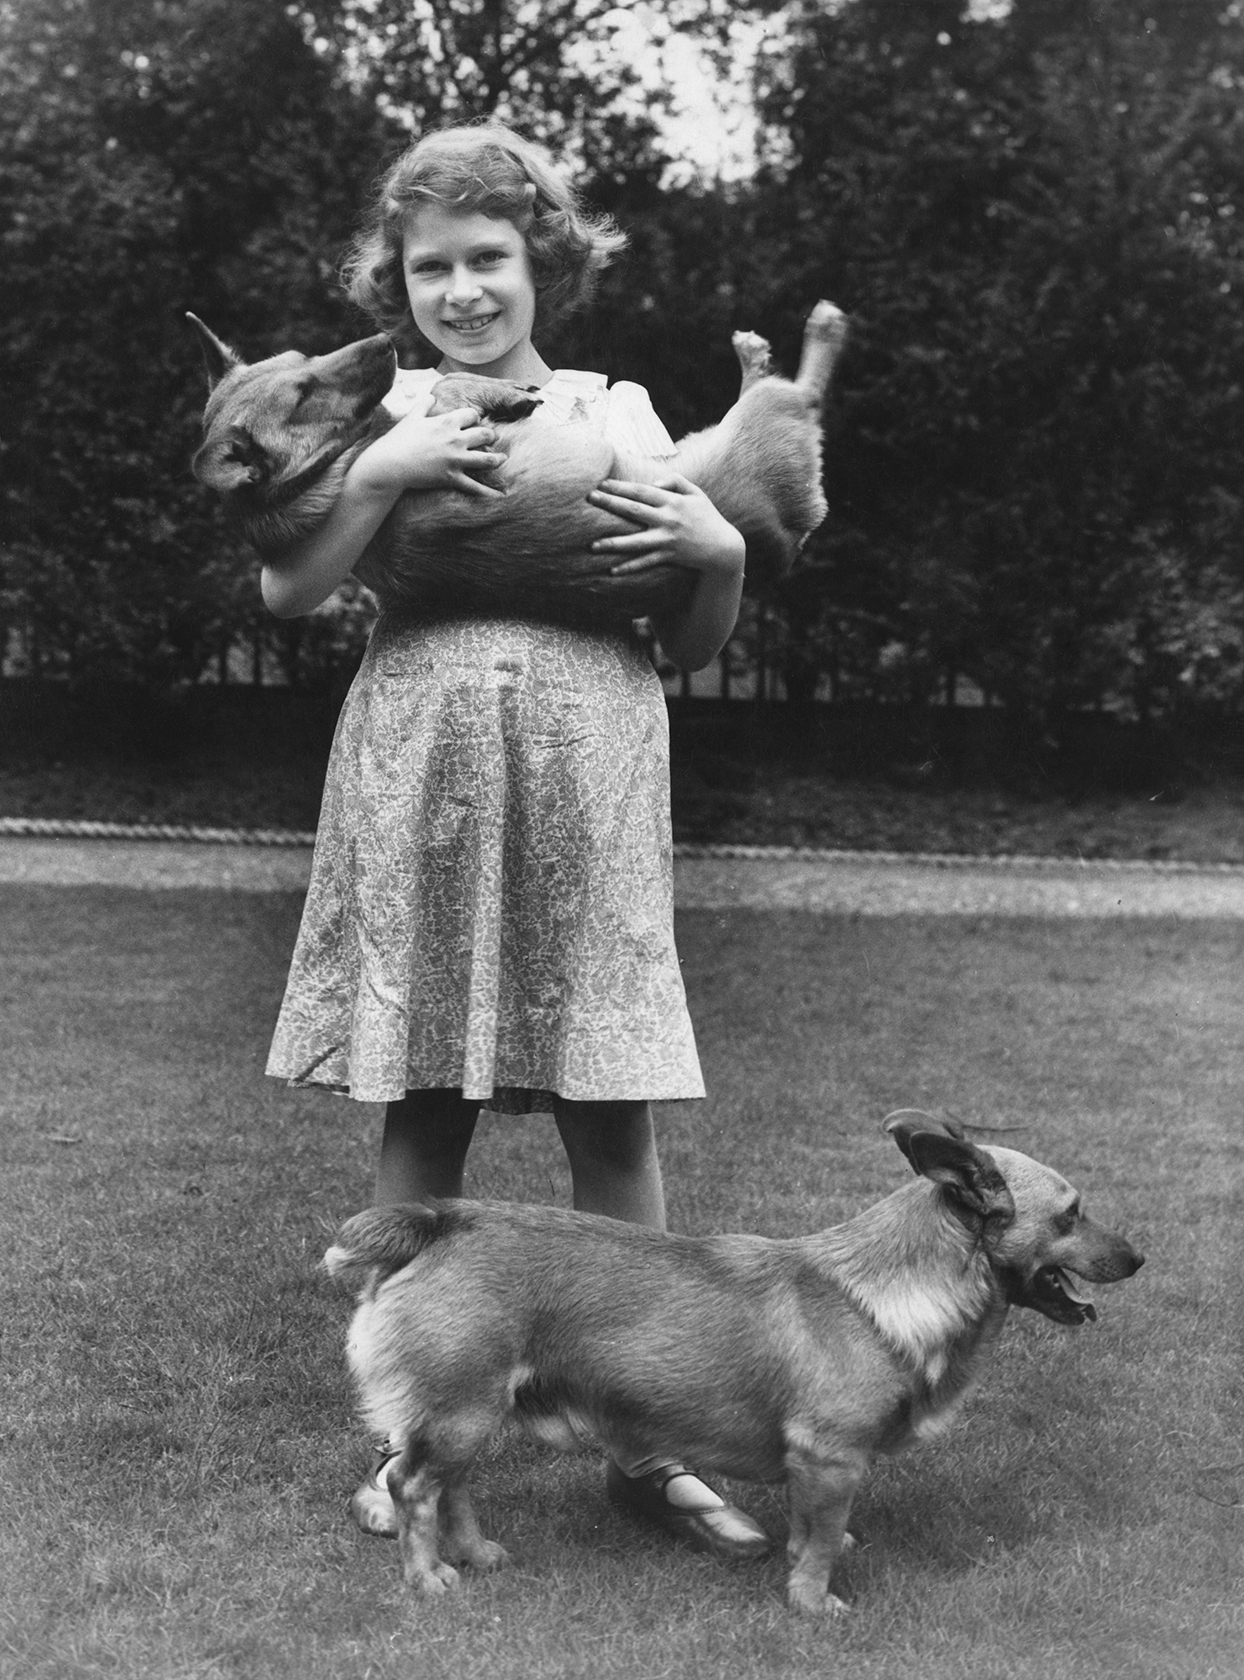 Young princess elizabeth holds corgi like a baby while another stands at her feet